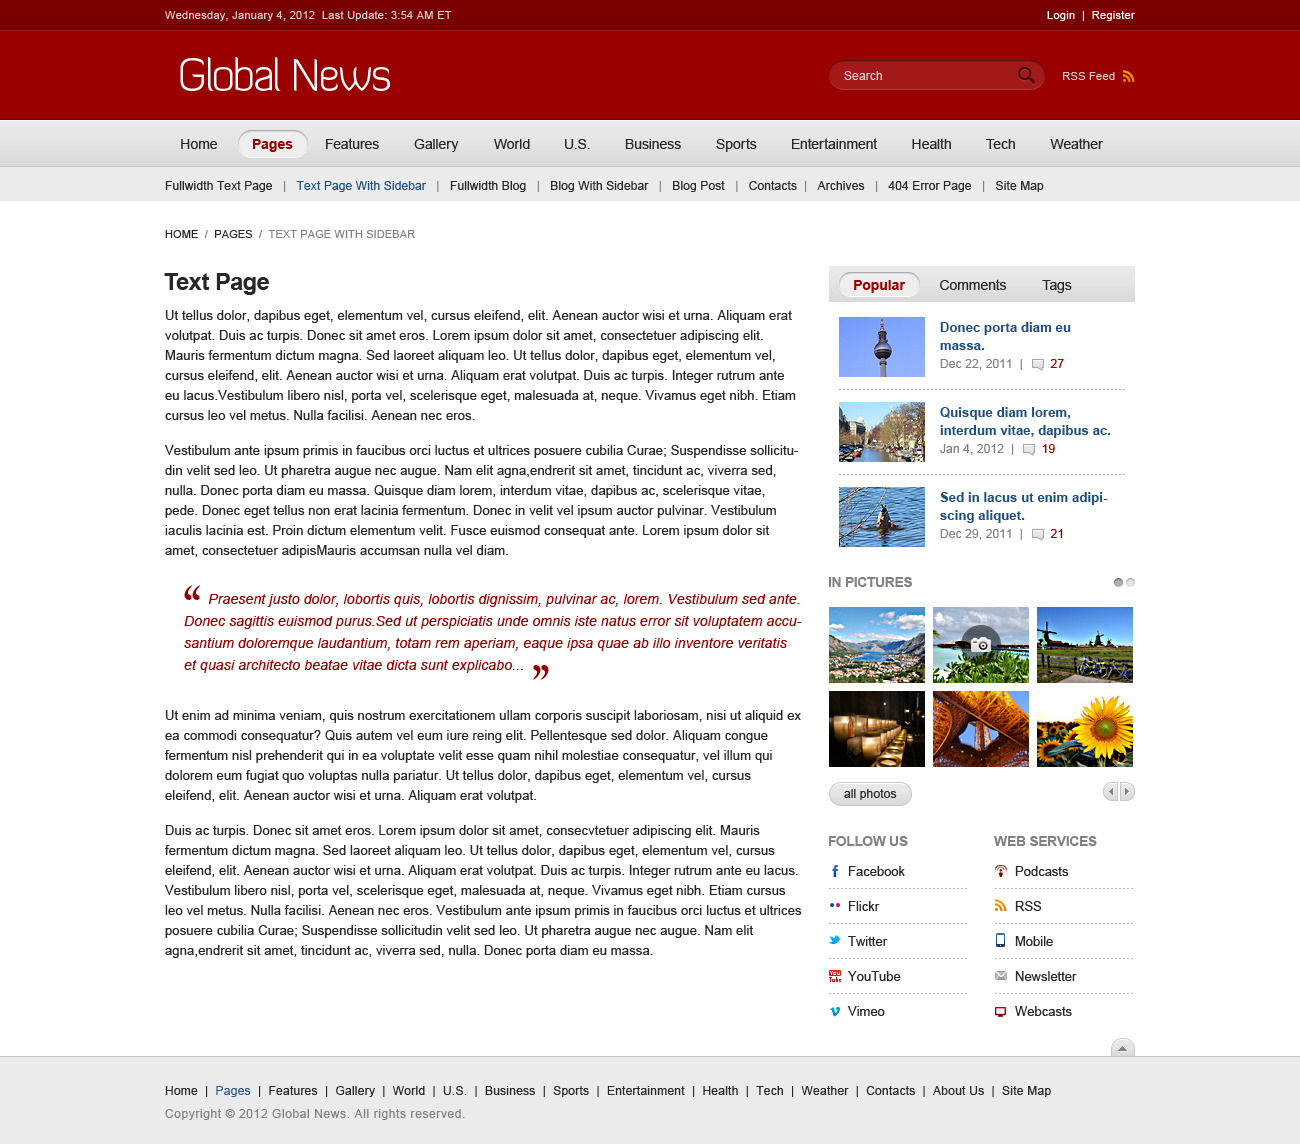 Global News Portal - HTML5 & CSS3 Template